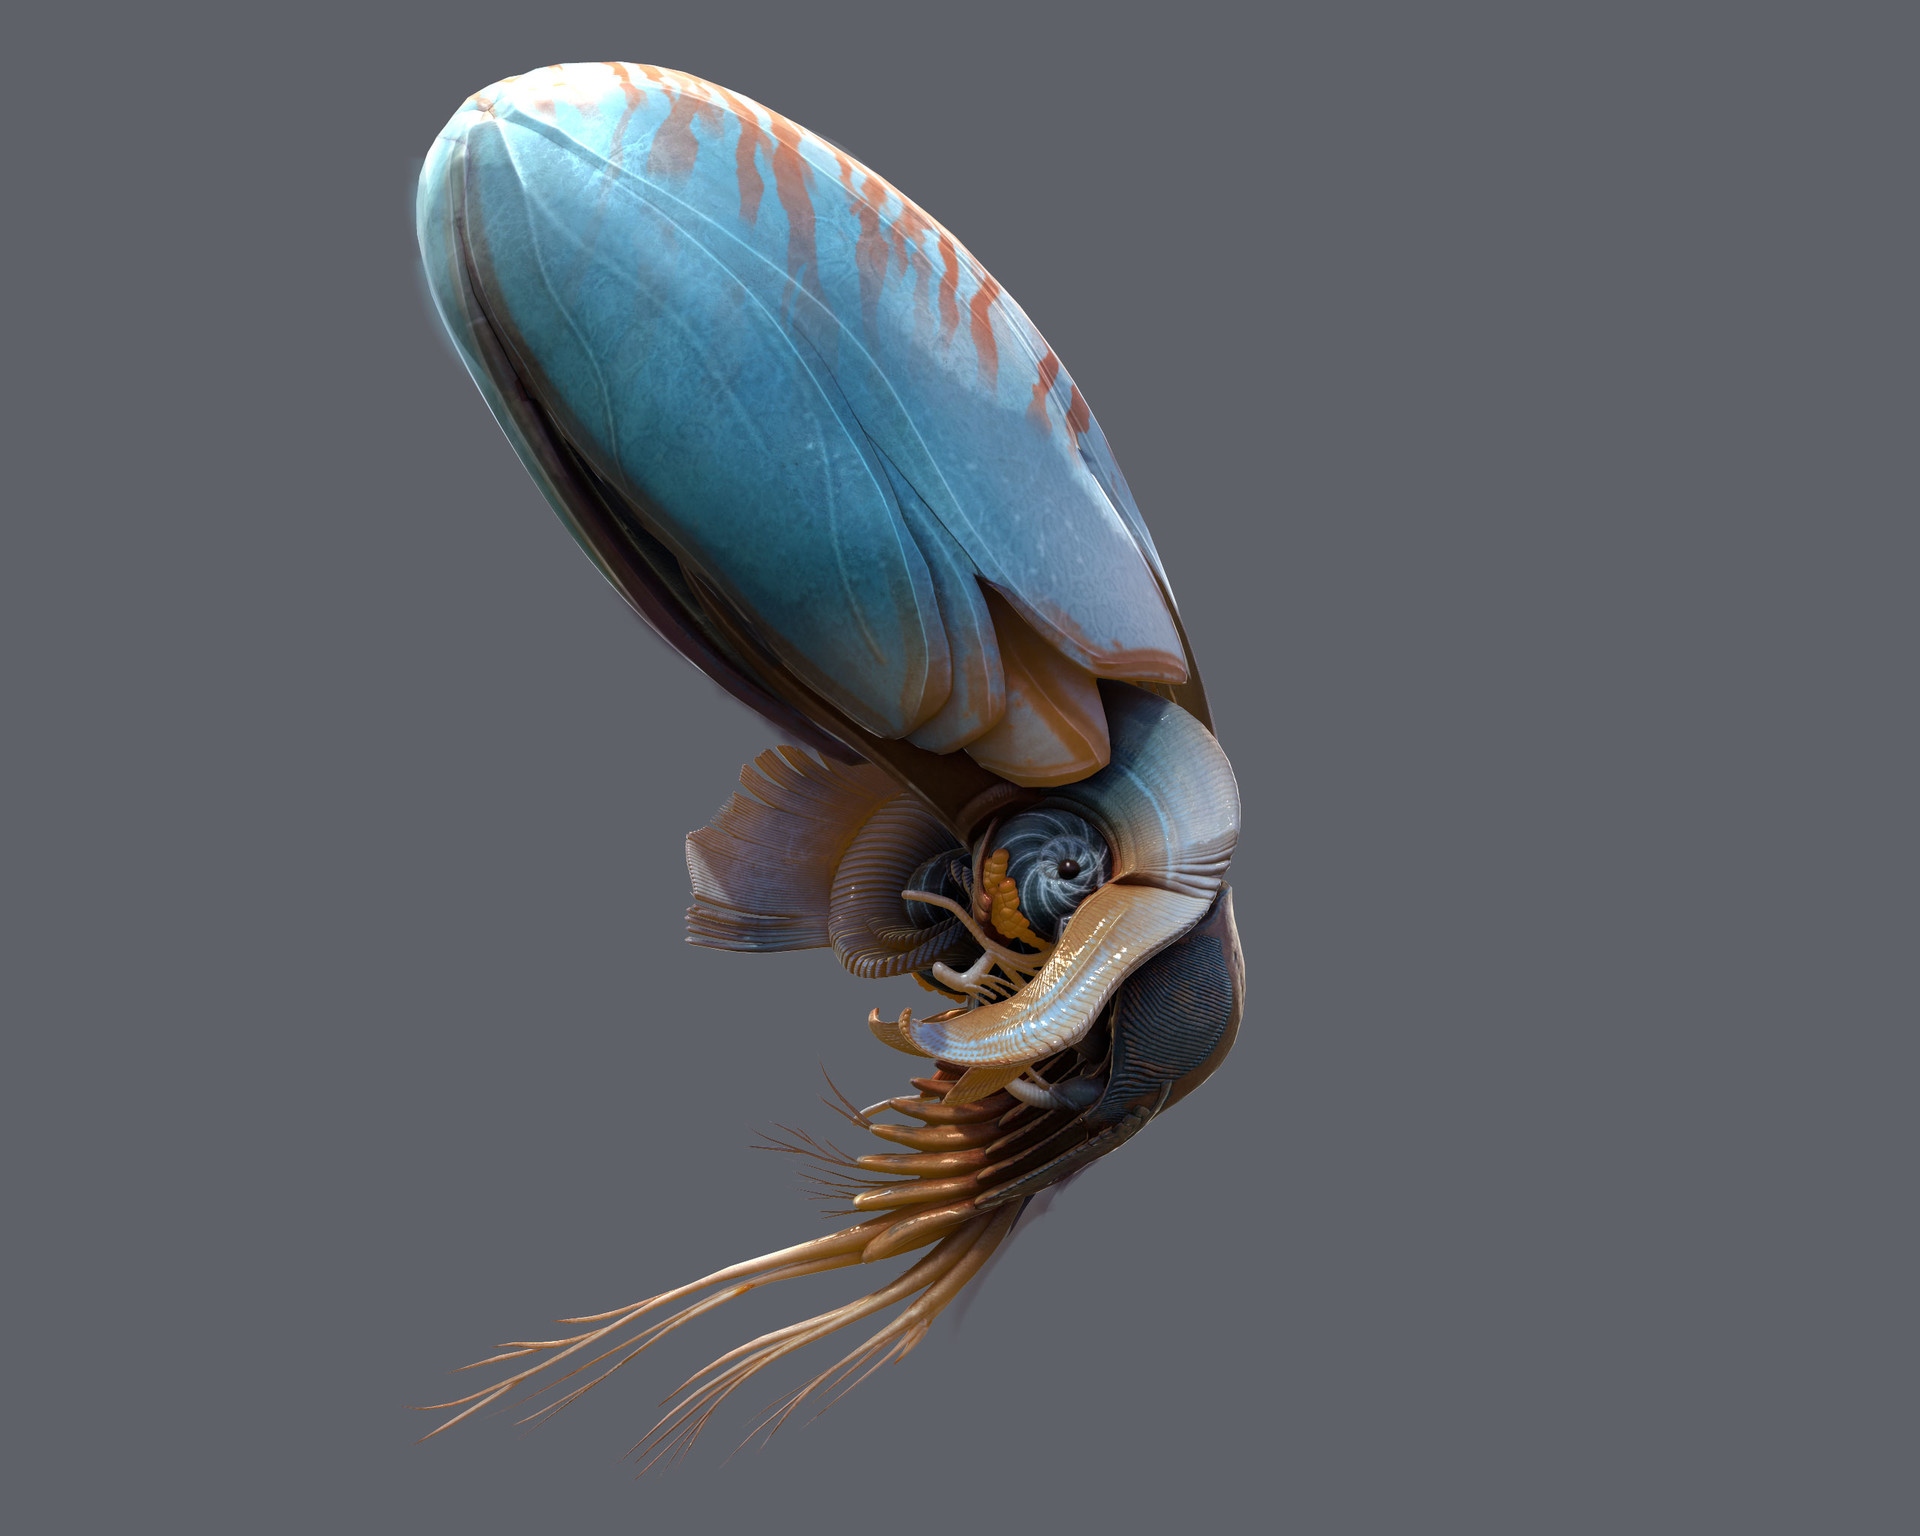 Artstation - Alien Squid 01 Tyler Smith